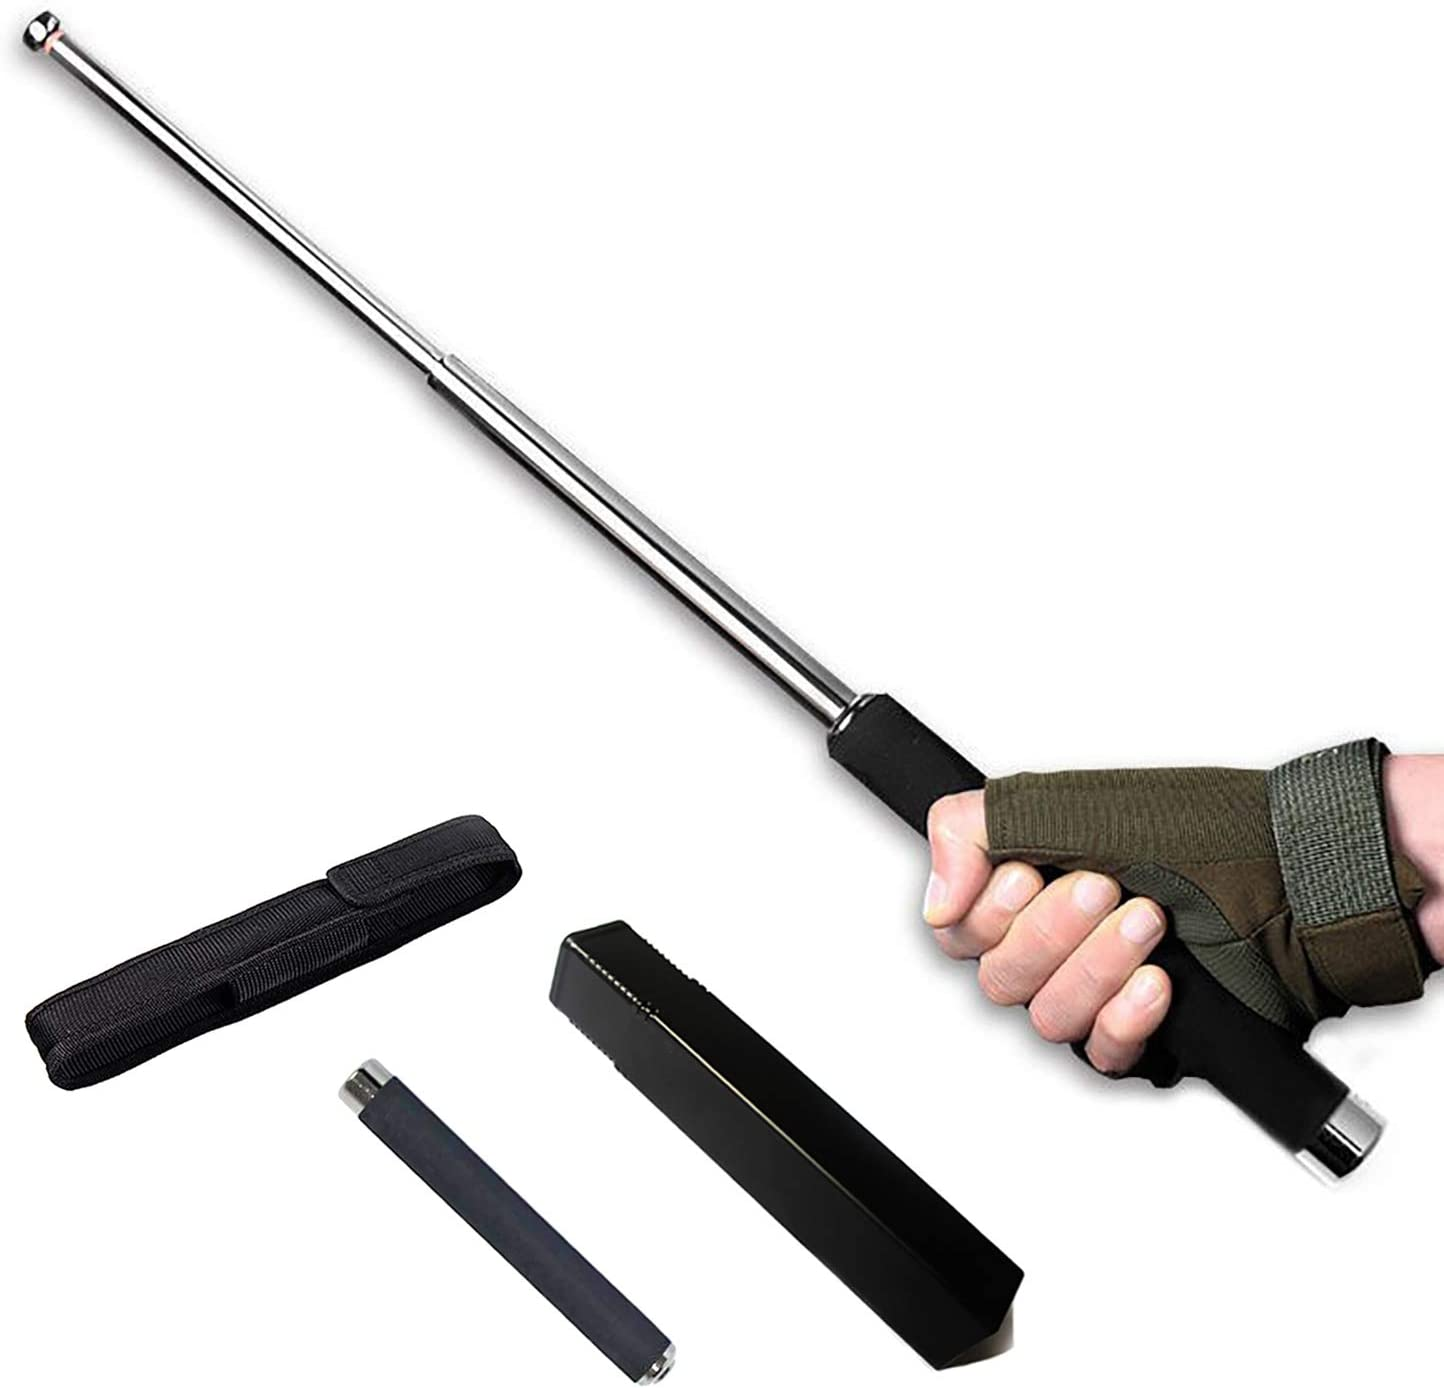 Portable Simply Action Appliance,26 Steel Safety Protect Tools for Outdoor